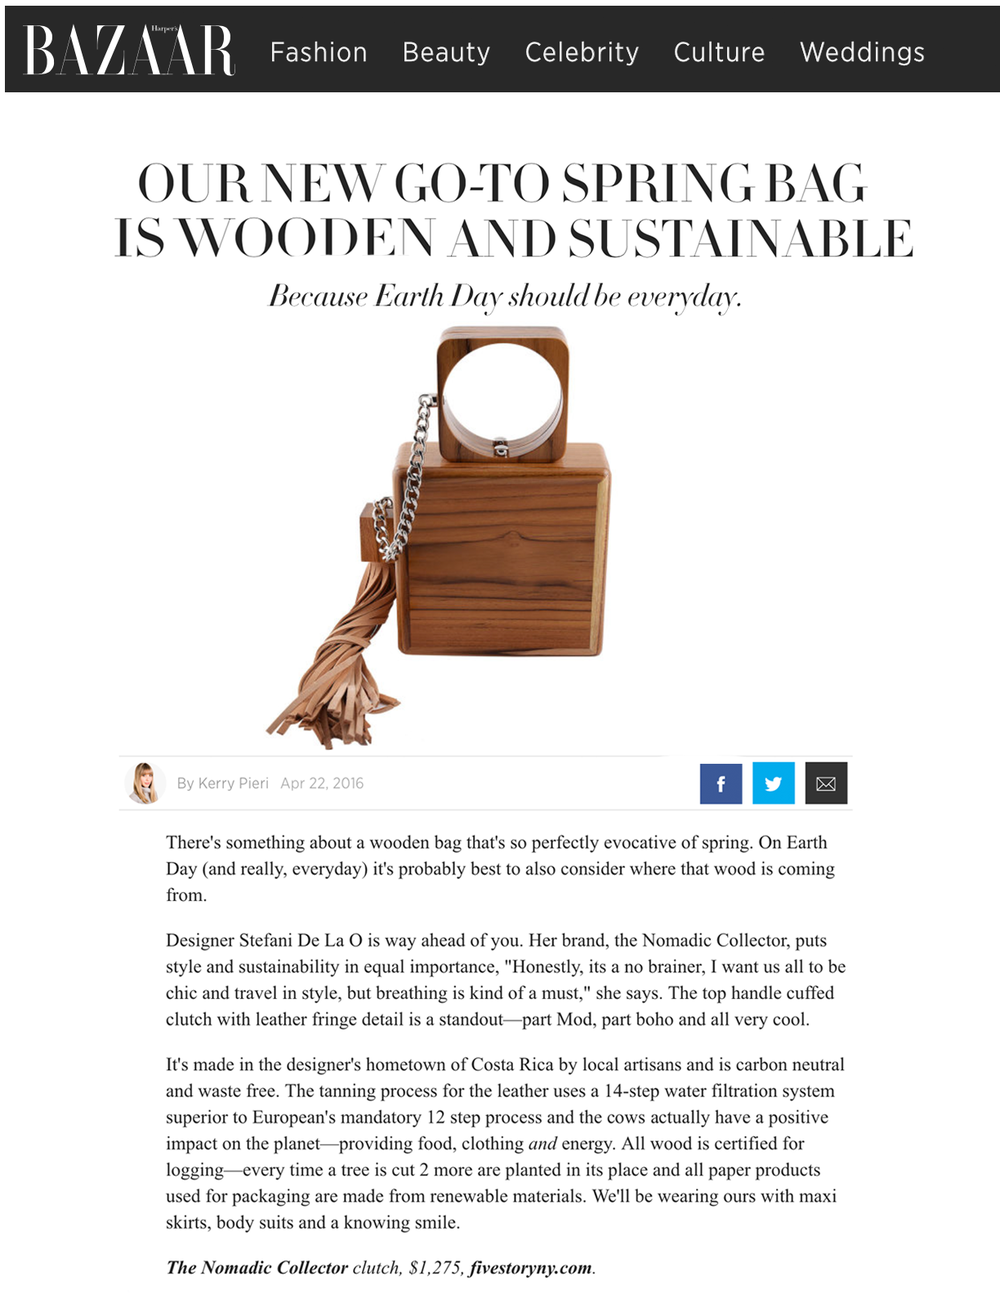 Harpers Bazaar _ Nomadic Collector _ Wooden Sustainable